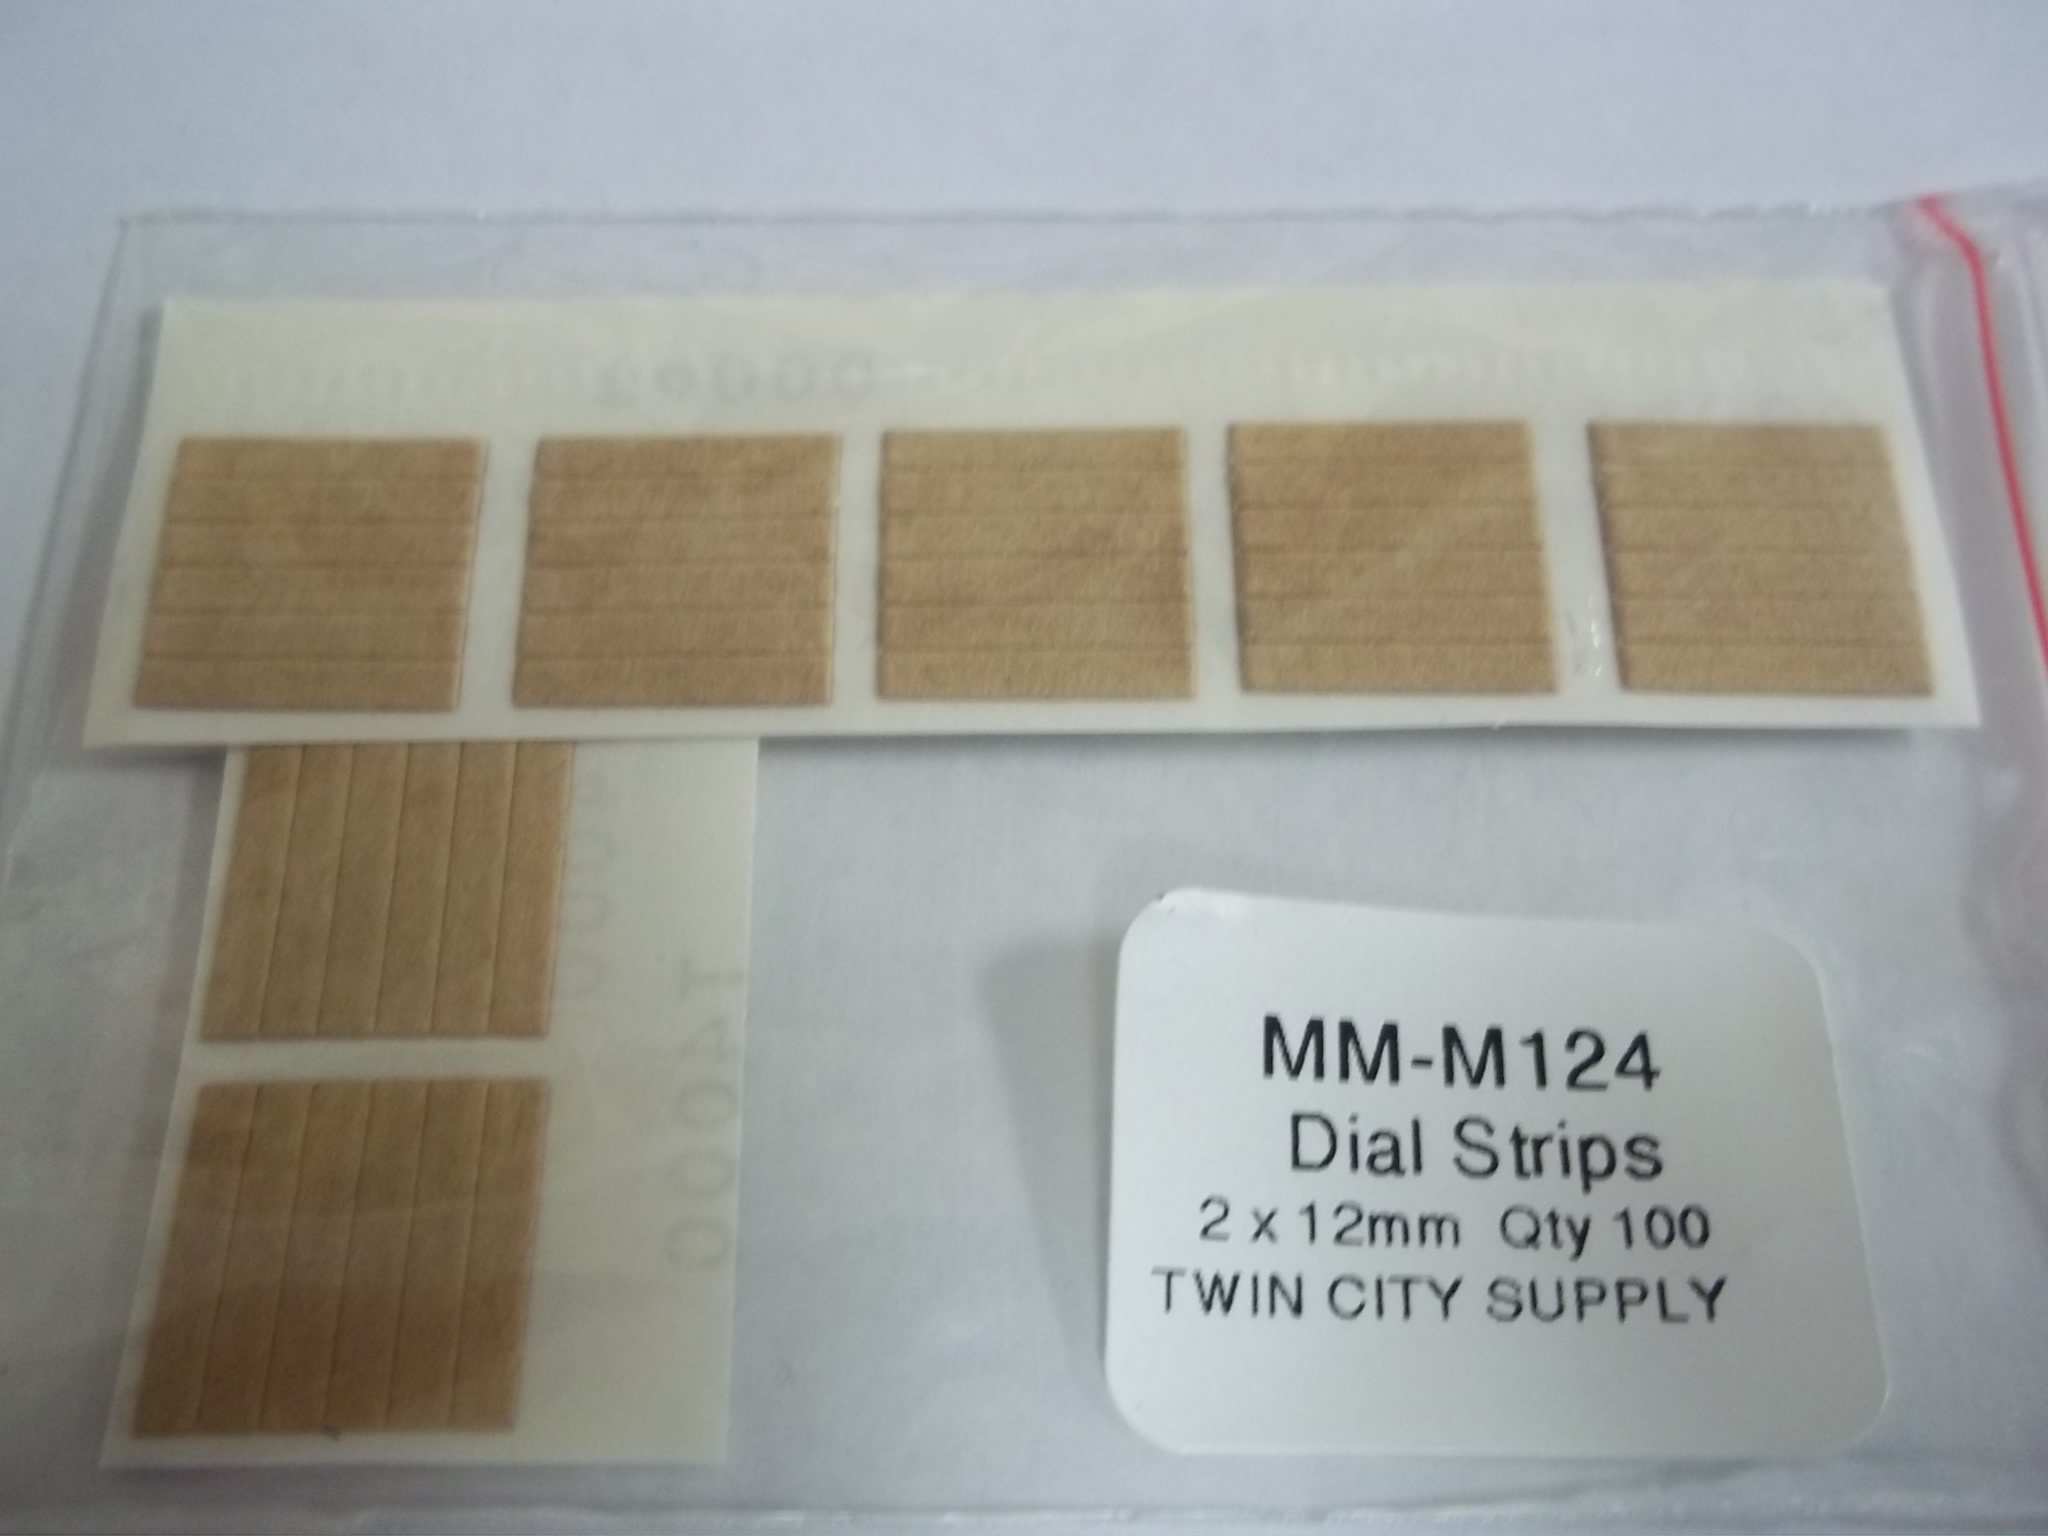 MM-M124 Dial Strips Pkg of 100, 2mm x 12mm- Newall